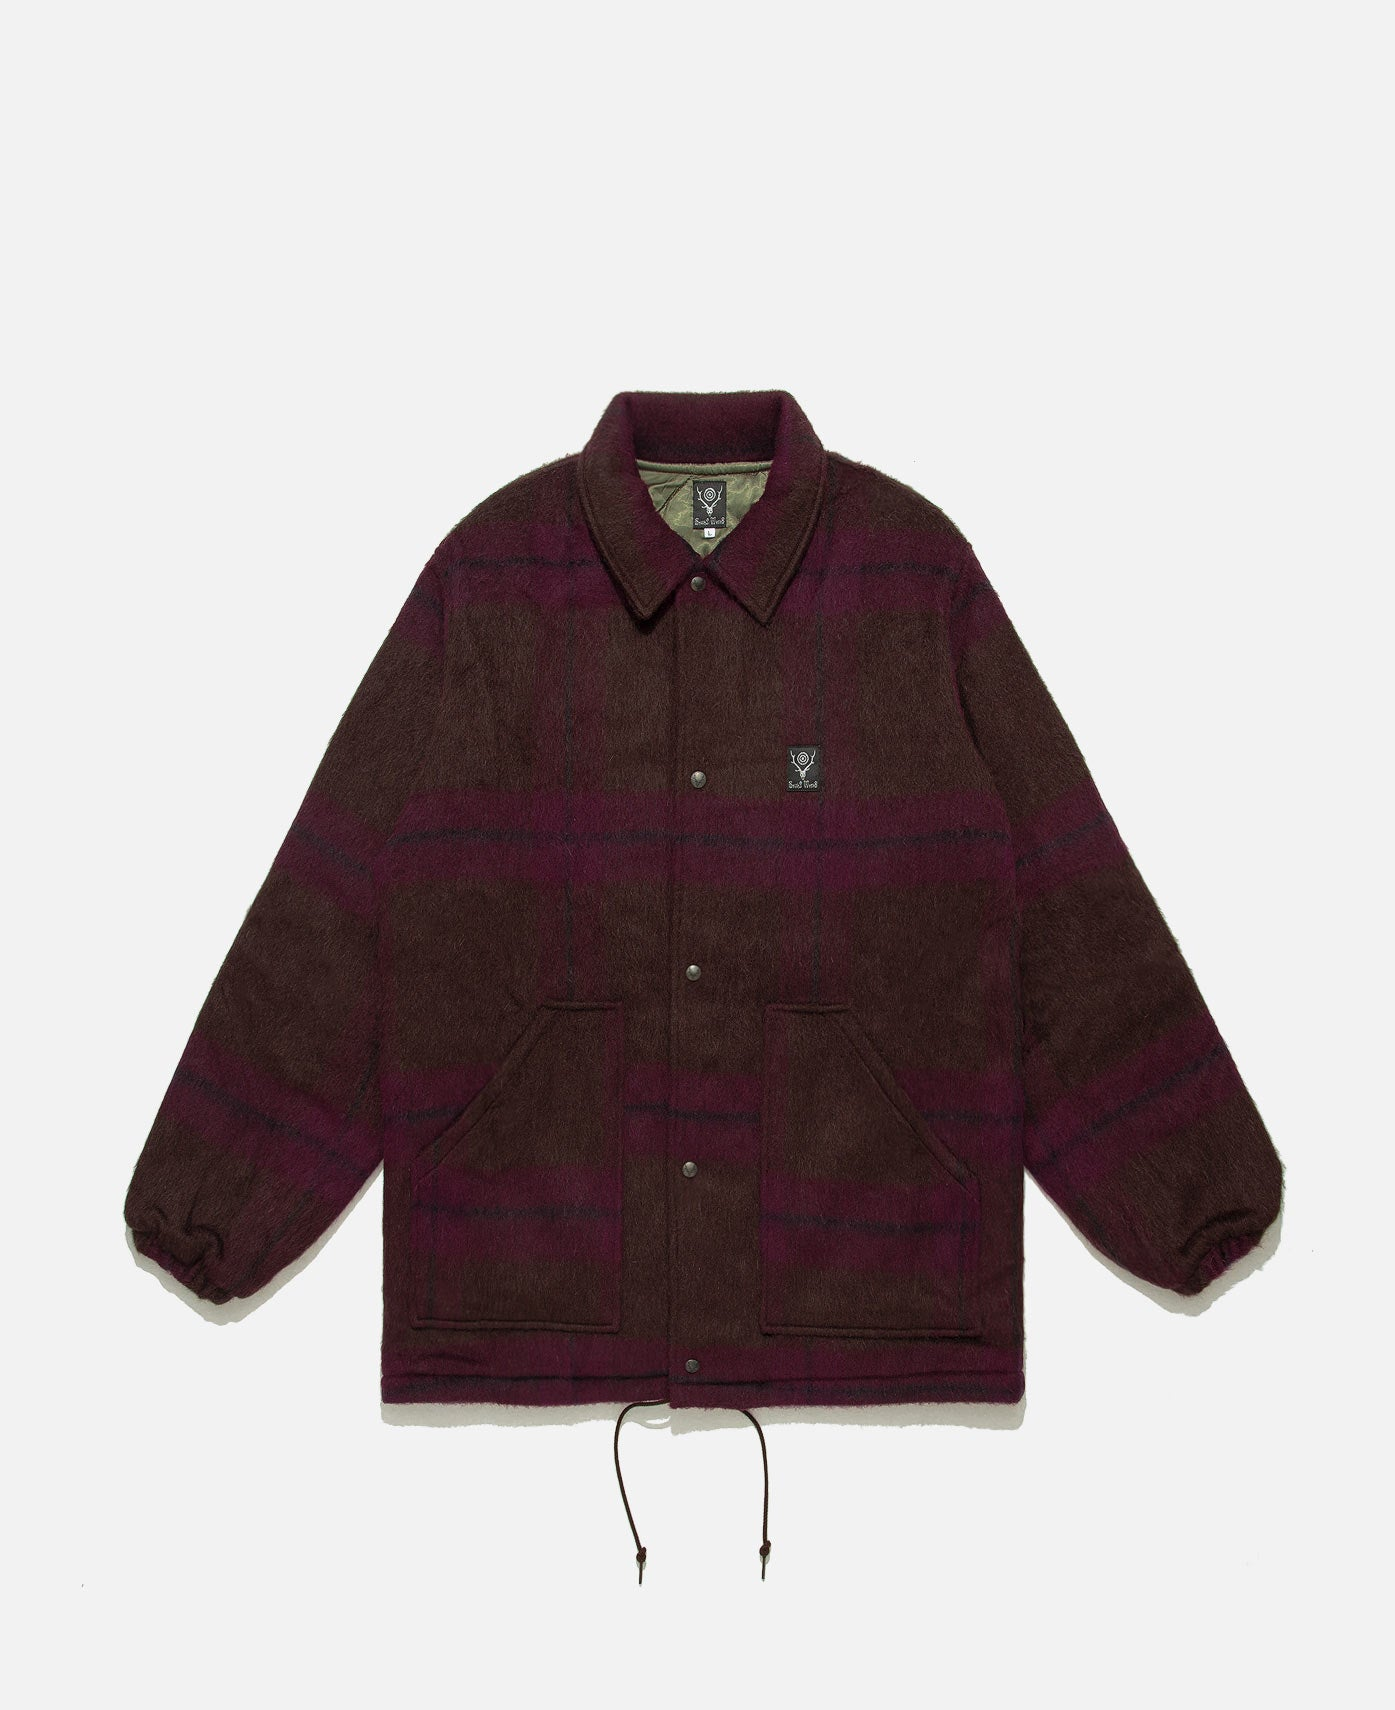 Shaggy Tweed Coach Jacket (Brown)